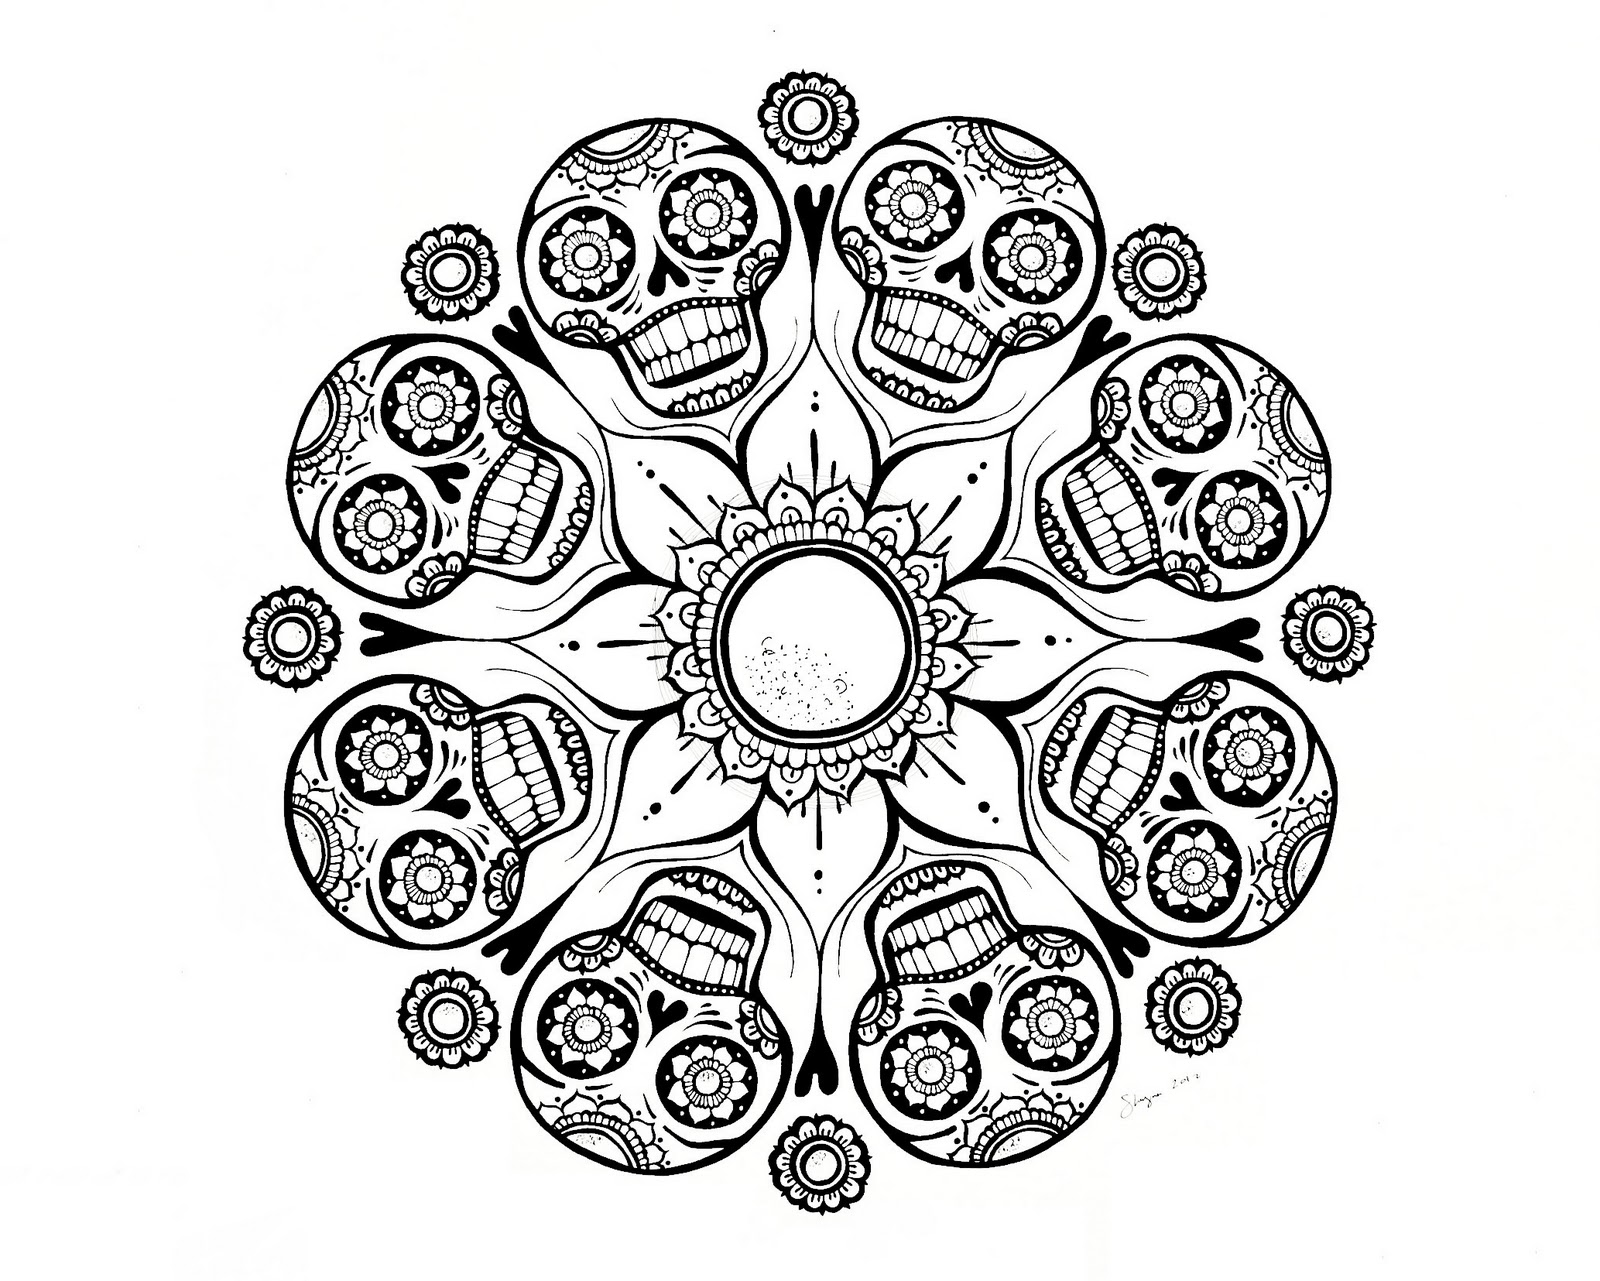 Skull Mandala Coloring Pages http://ispywithmycraftyeyes.blogspot.com/2012/01/sugar-skull-flower-finished.html